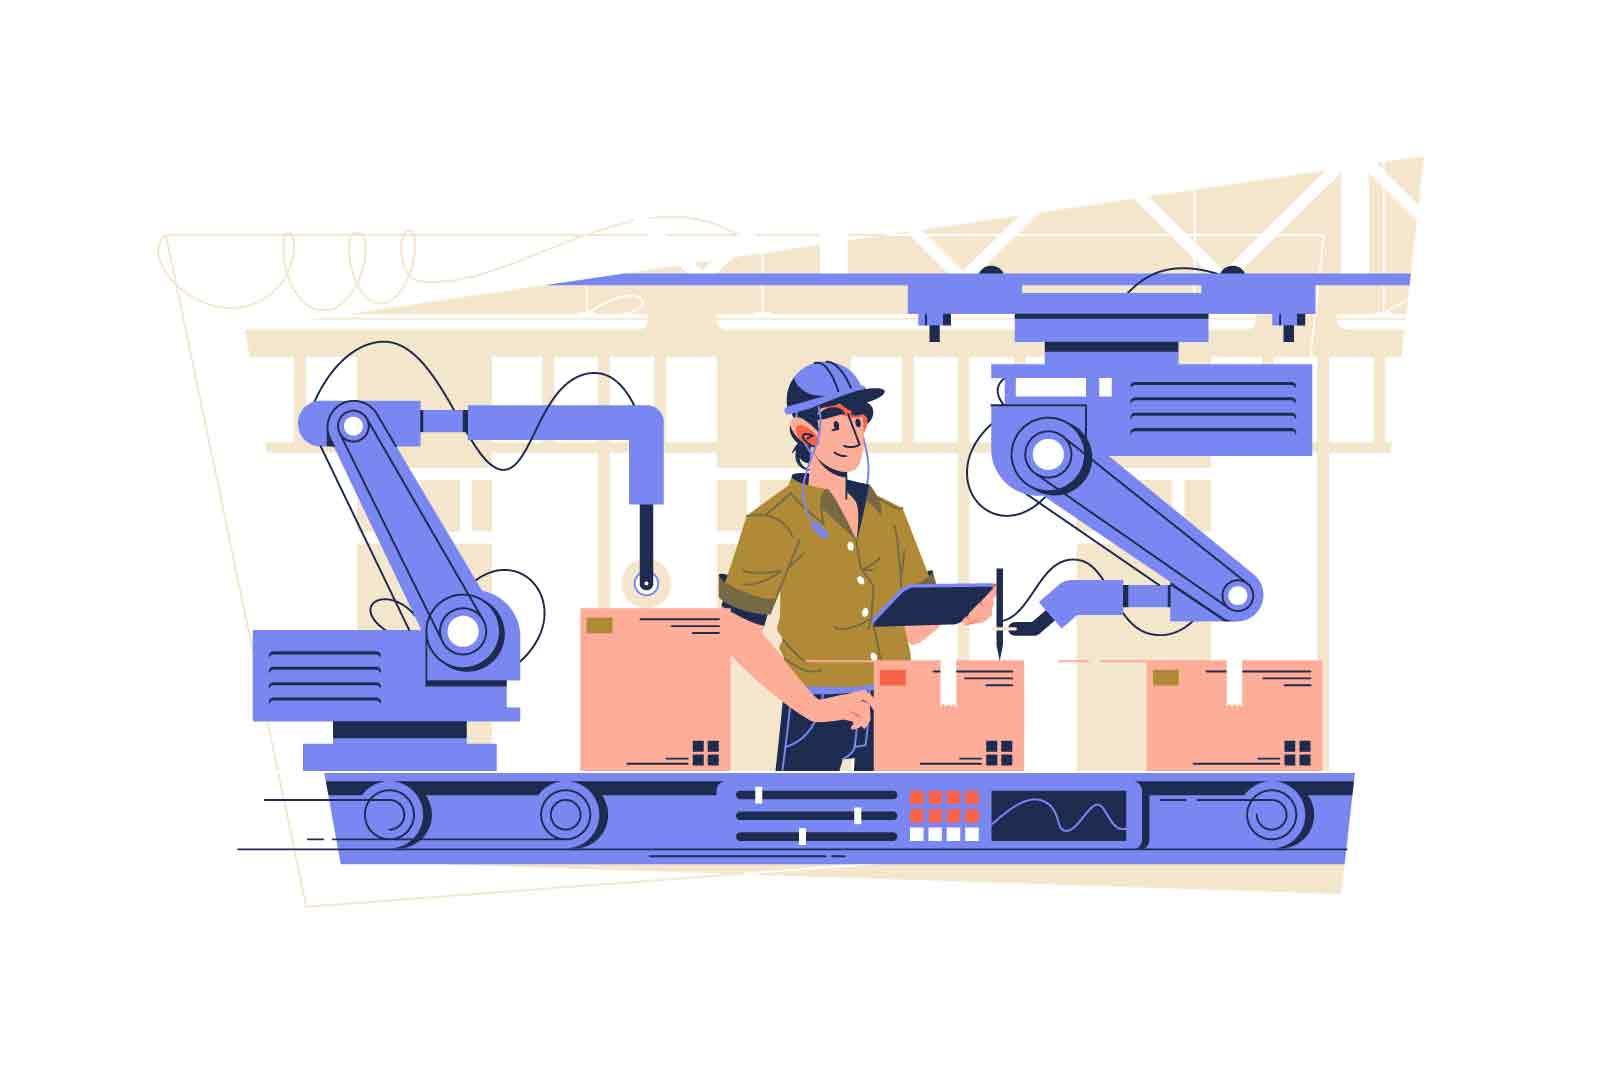 Automated production line on factory vector illustration. Delivery and distribution industry flat style. Manufacturing process concept